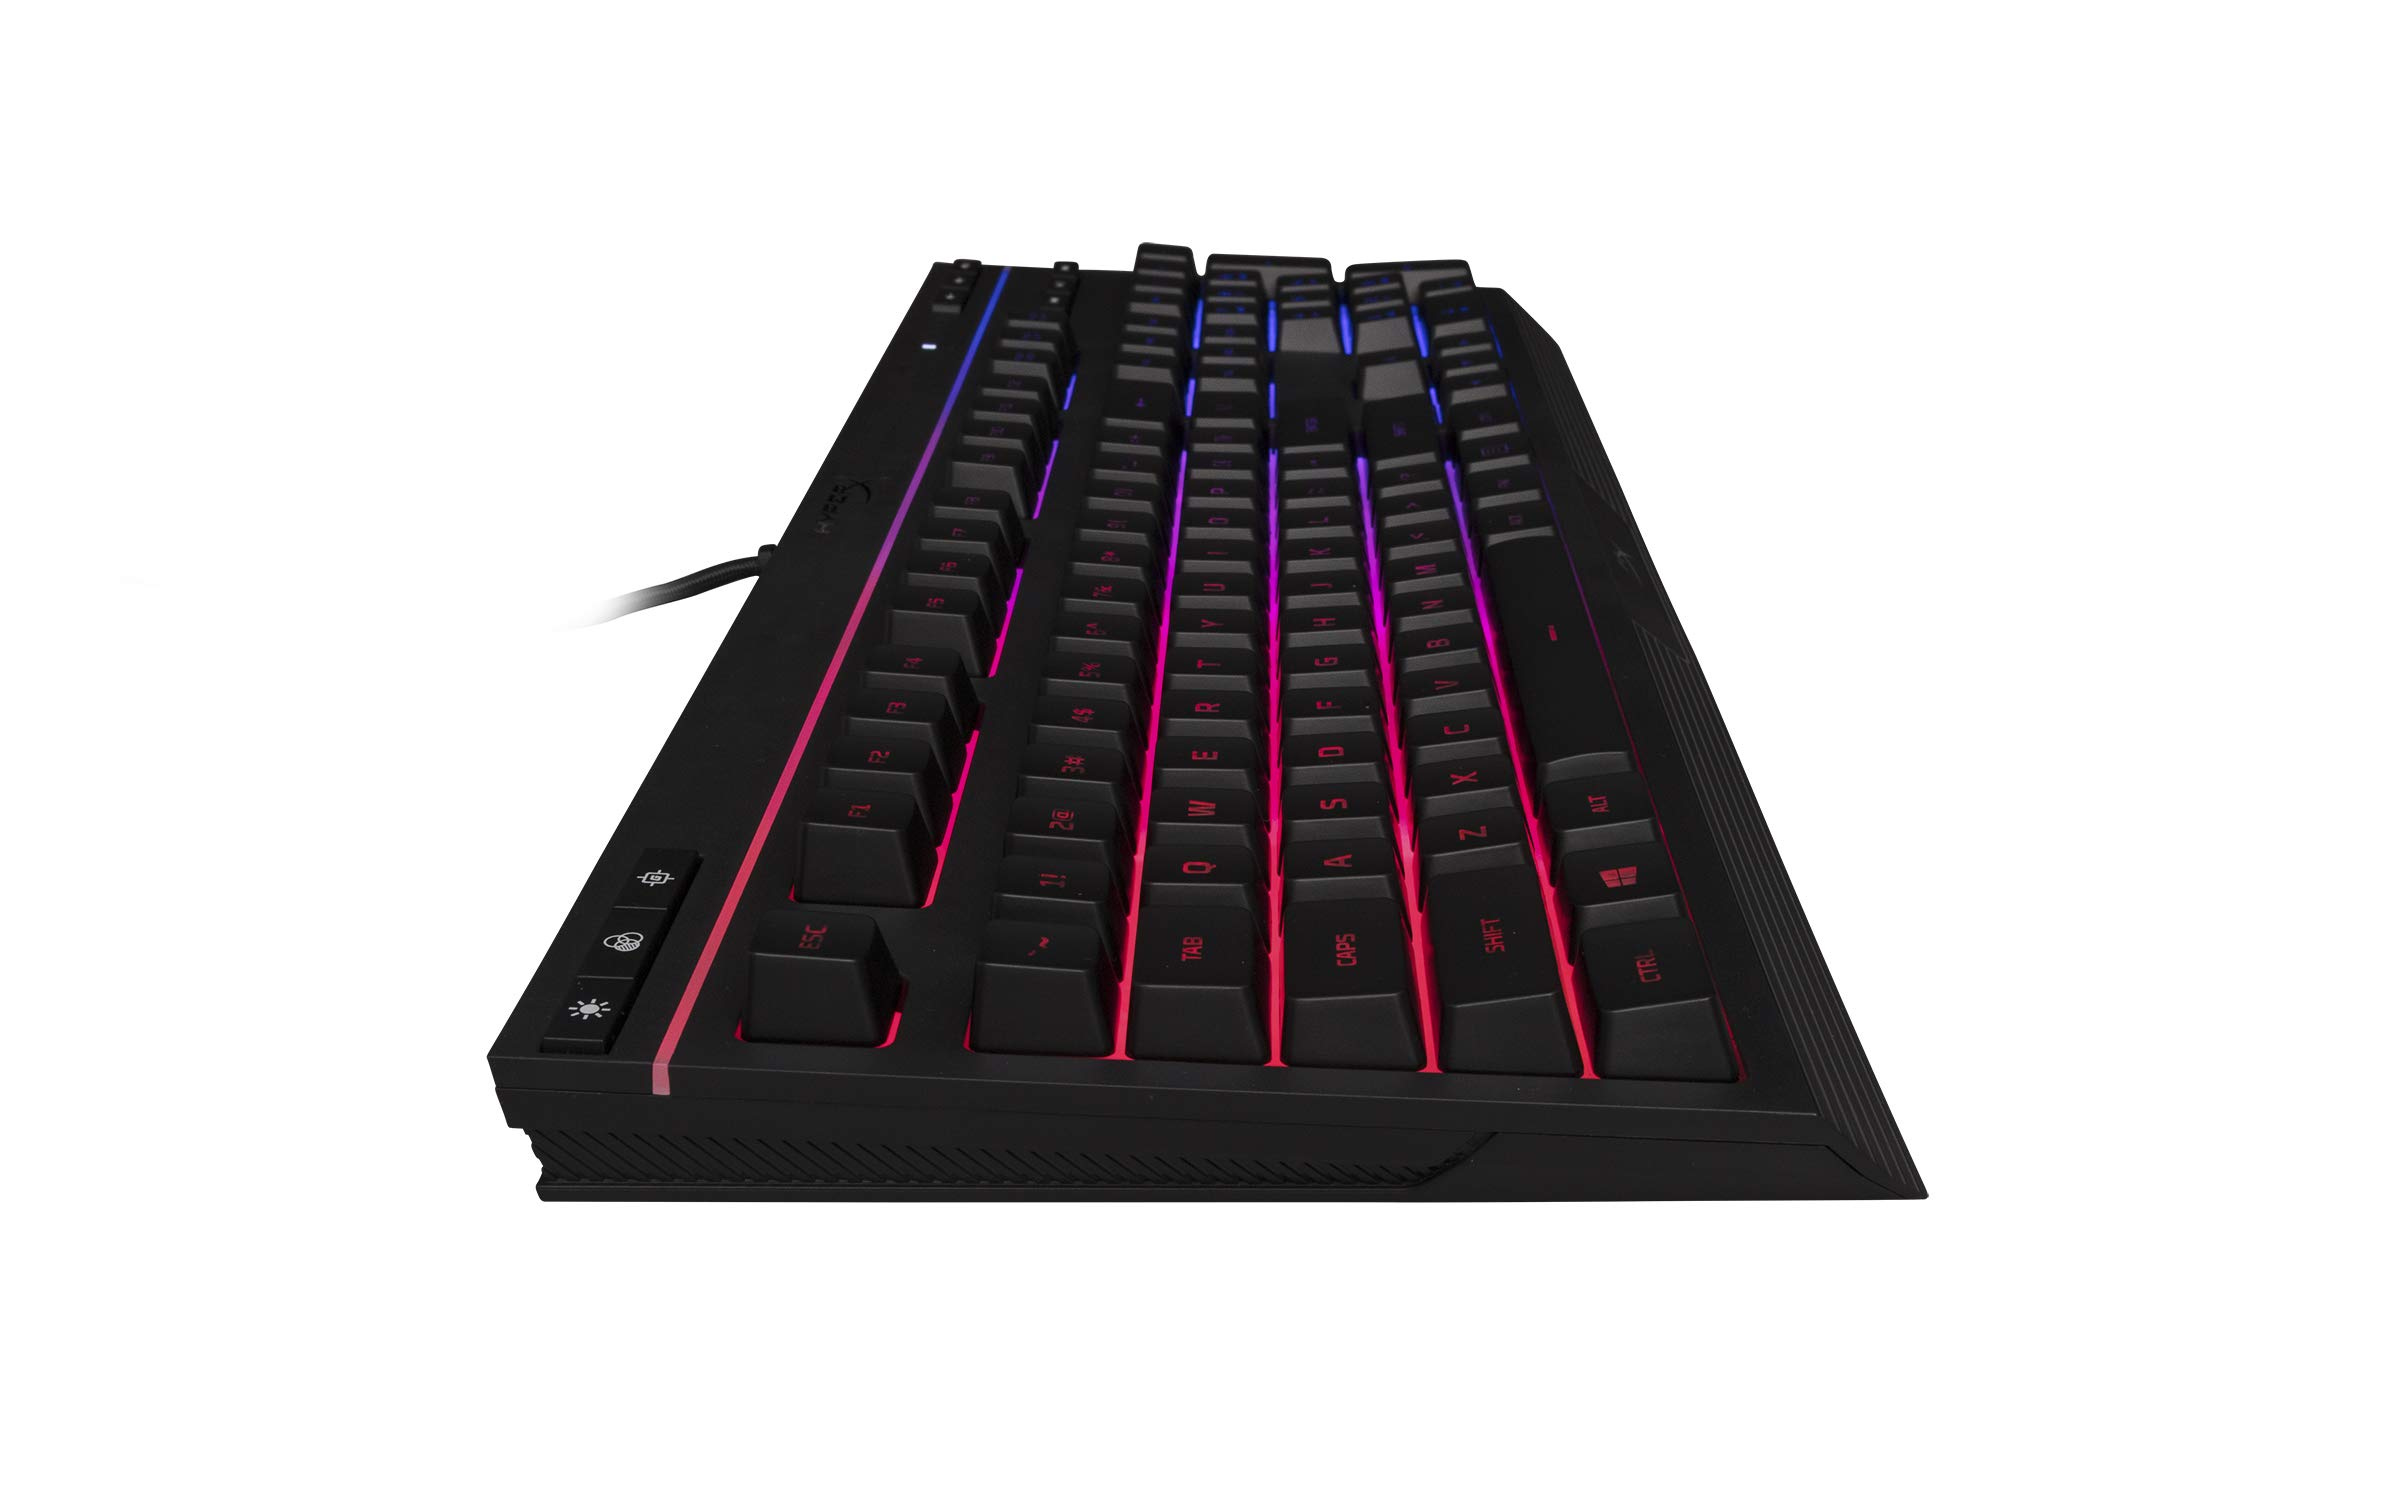 HyperX Alloy Core RGB – Membrane Gaming Keyboard – Comfortable Quiet Silent Keys with RGB LED Lighting Effects, Spill Resistant, Dedicated Media Keys, Compatible with Windows 10/8.1/8/7 – Black by HyperX (Image #3)